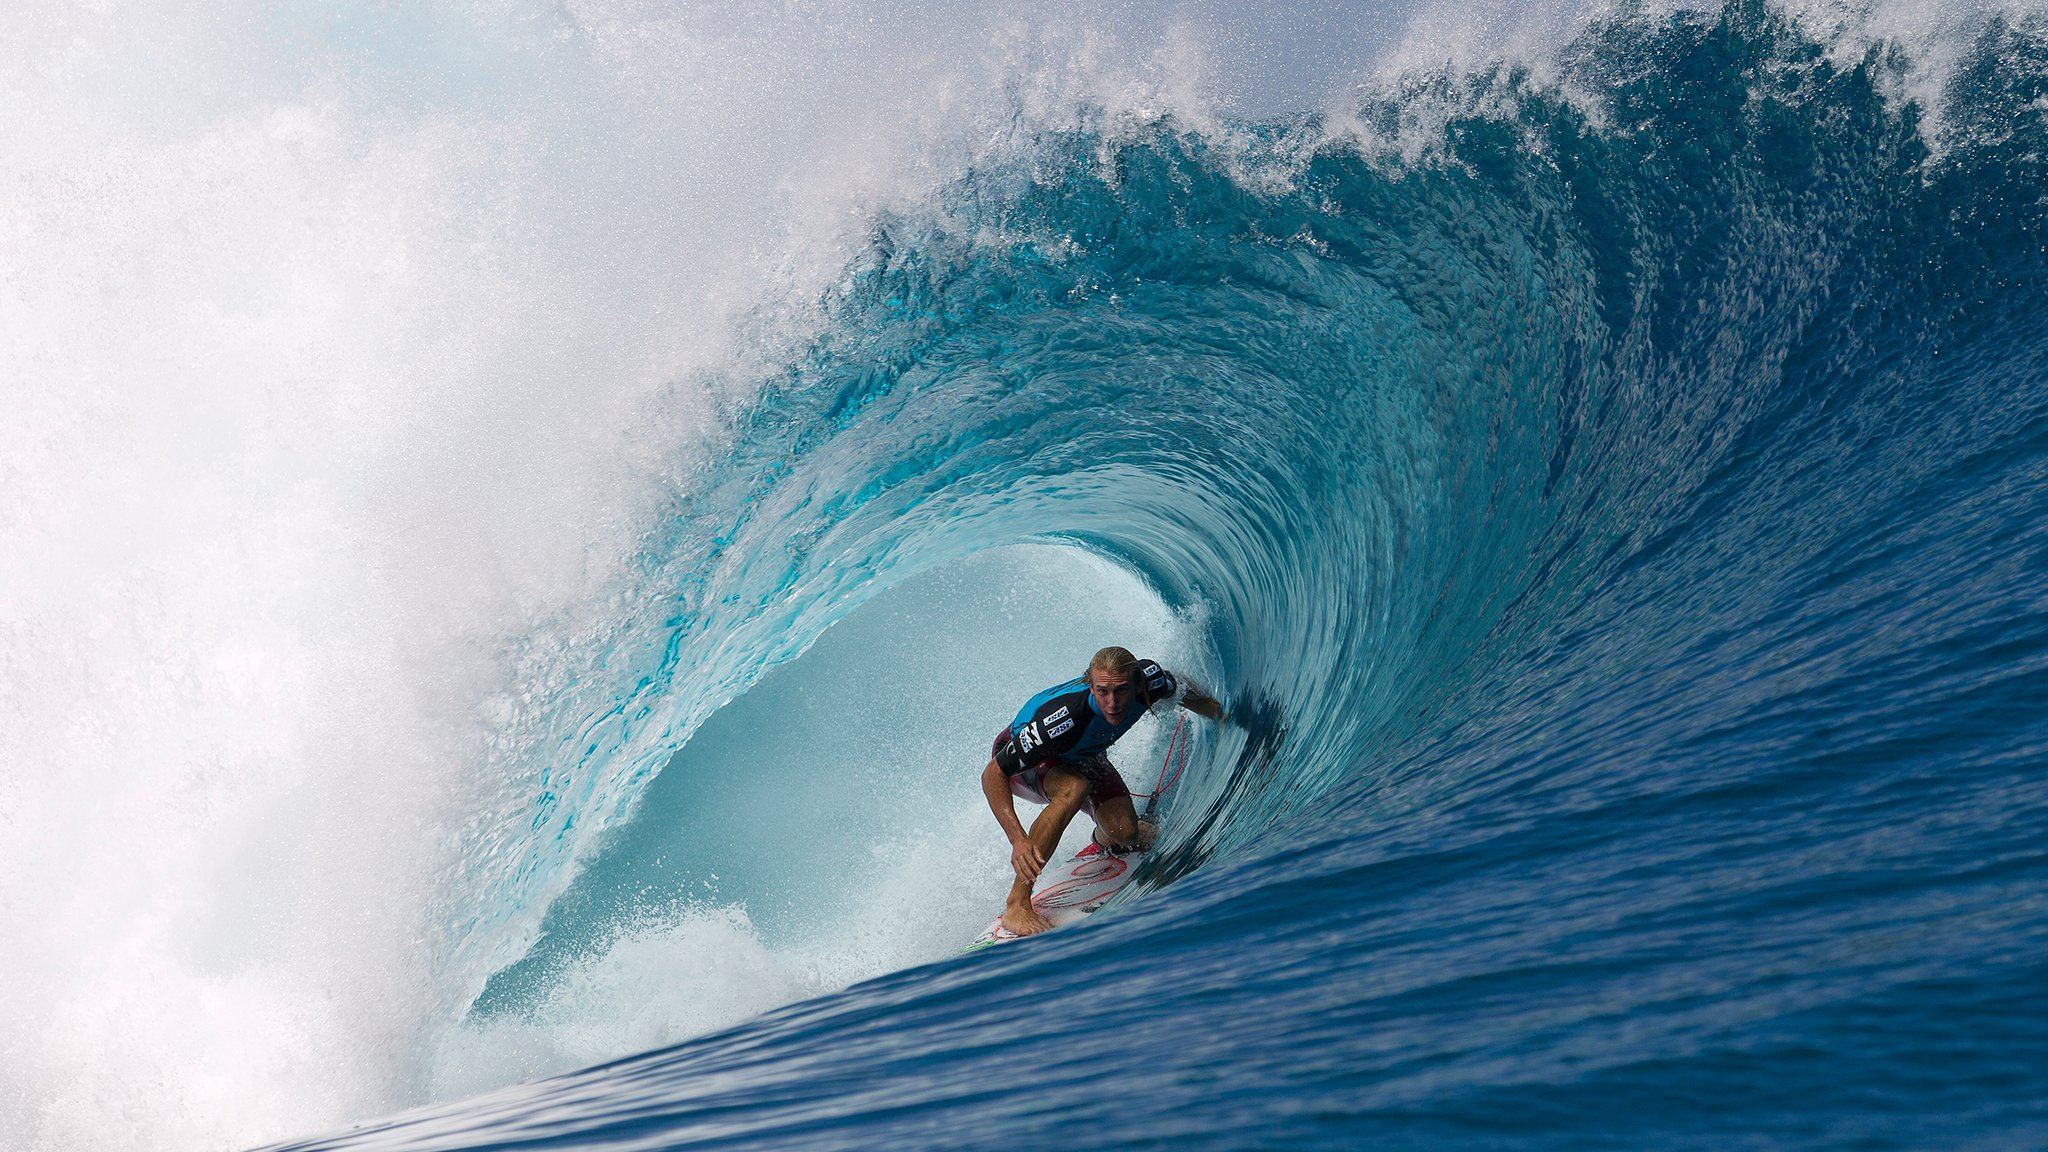 Extreme Surfing Wallpaper: Surfing Surf Ocean Sea Waves Extreme Surfer (78) Wallpaper